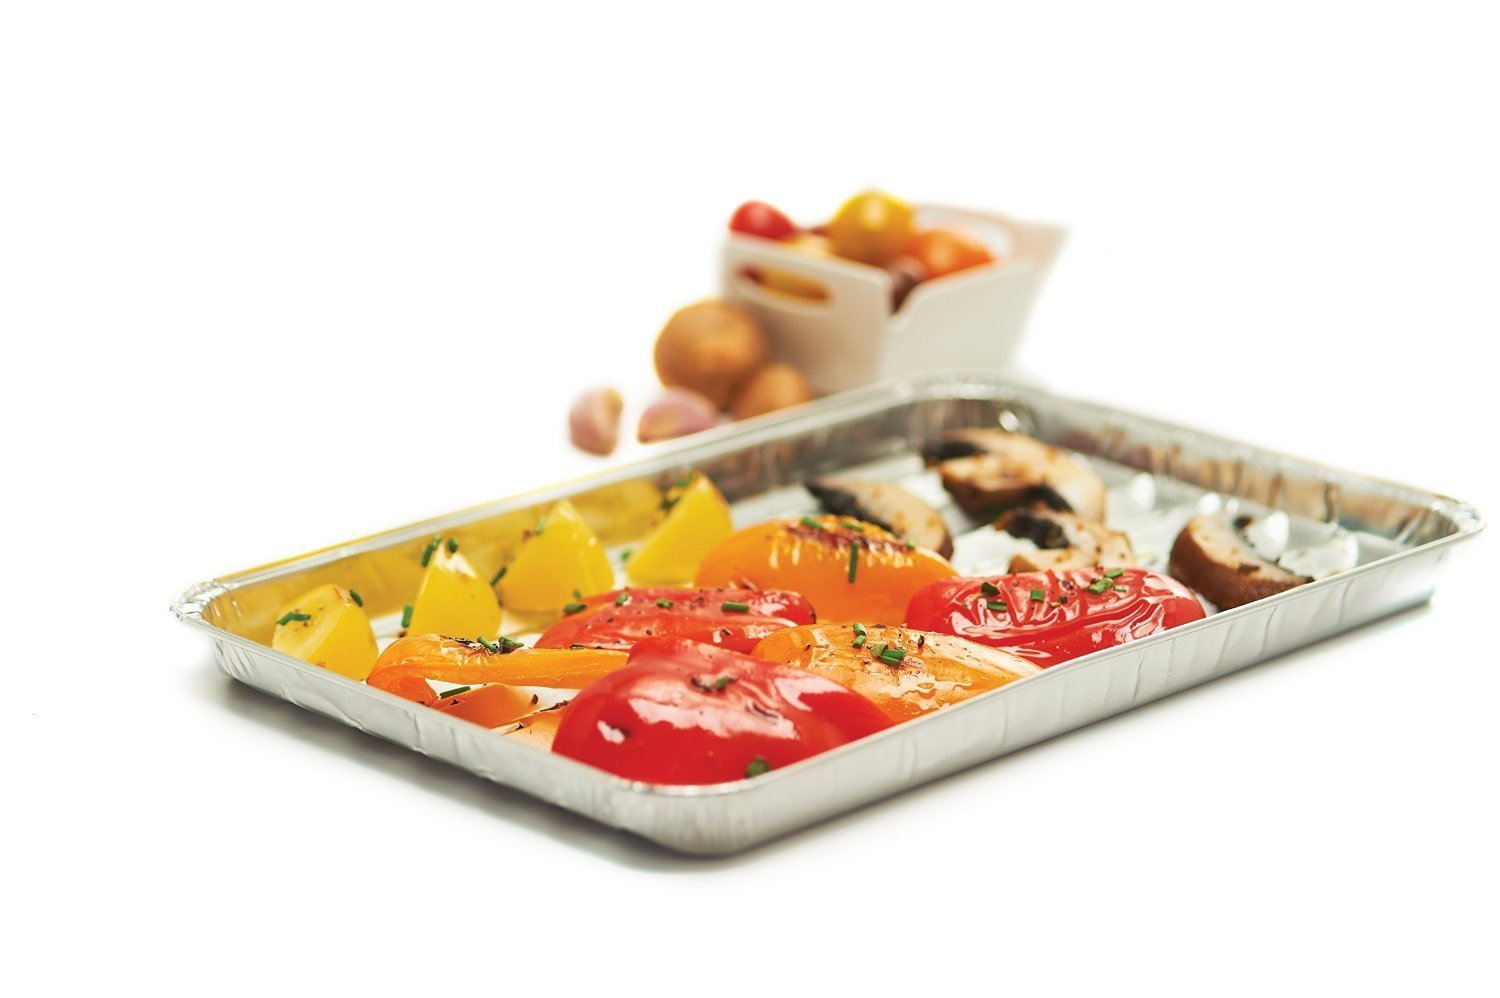 RL Treats BBQ Grill Pans/Aluminum Foil Grilling Trays, Pack of 3 by RL Treats (Image #1)